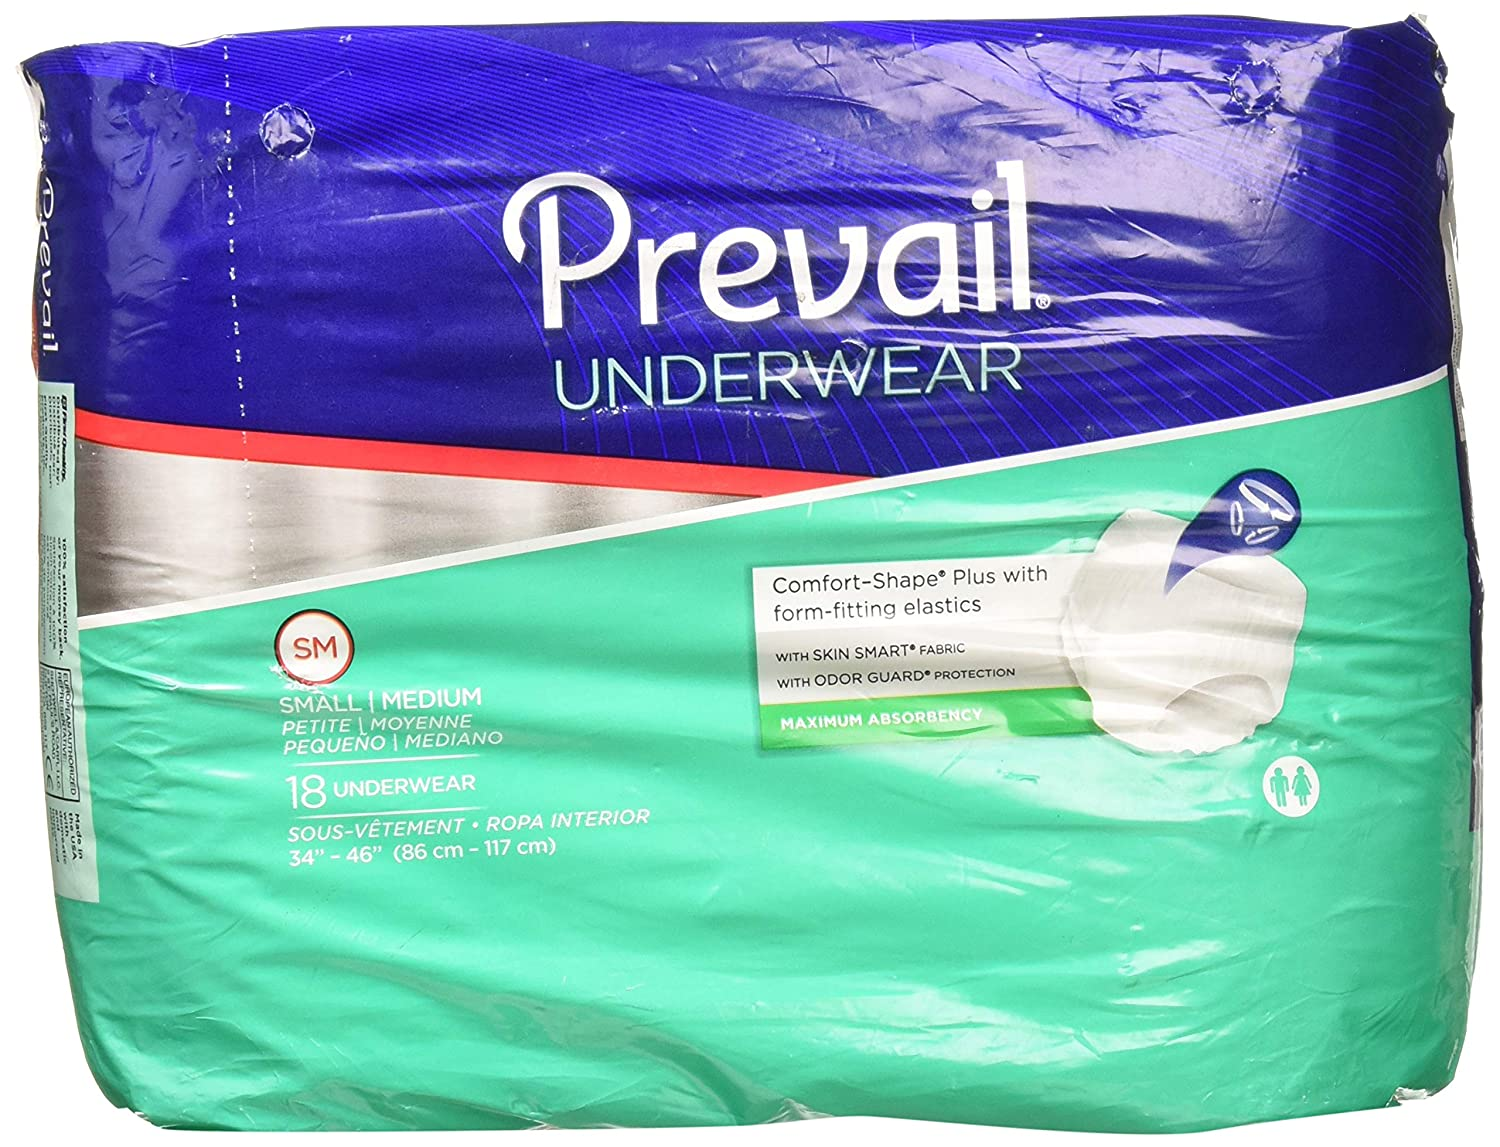 Amazon.com: Prevail Maximum Absorbency Underwear, Small/Medium, Pack/18: Health & Personal Care